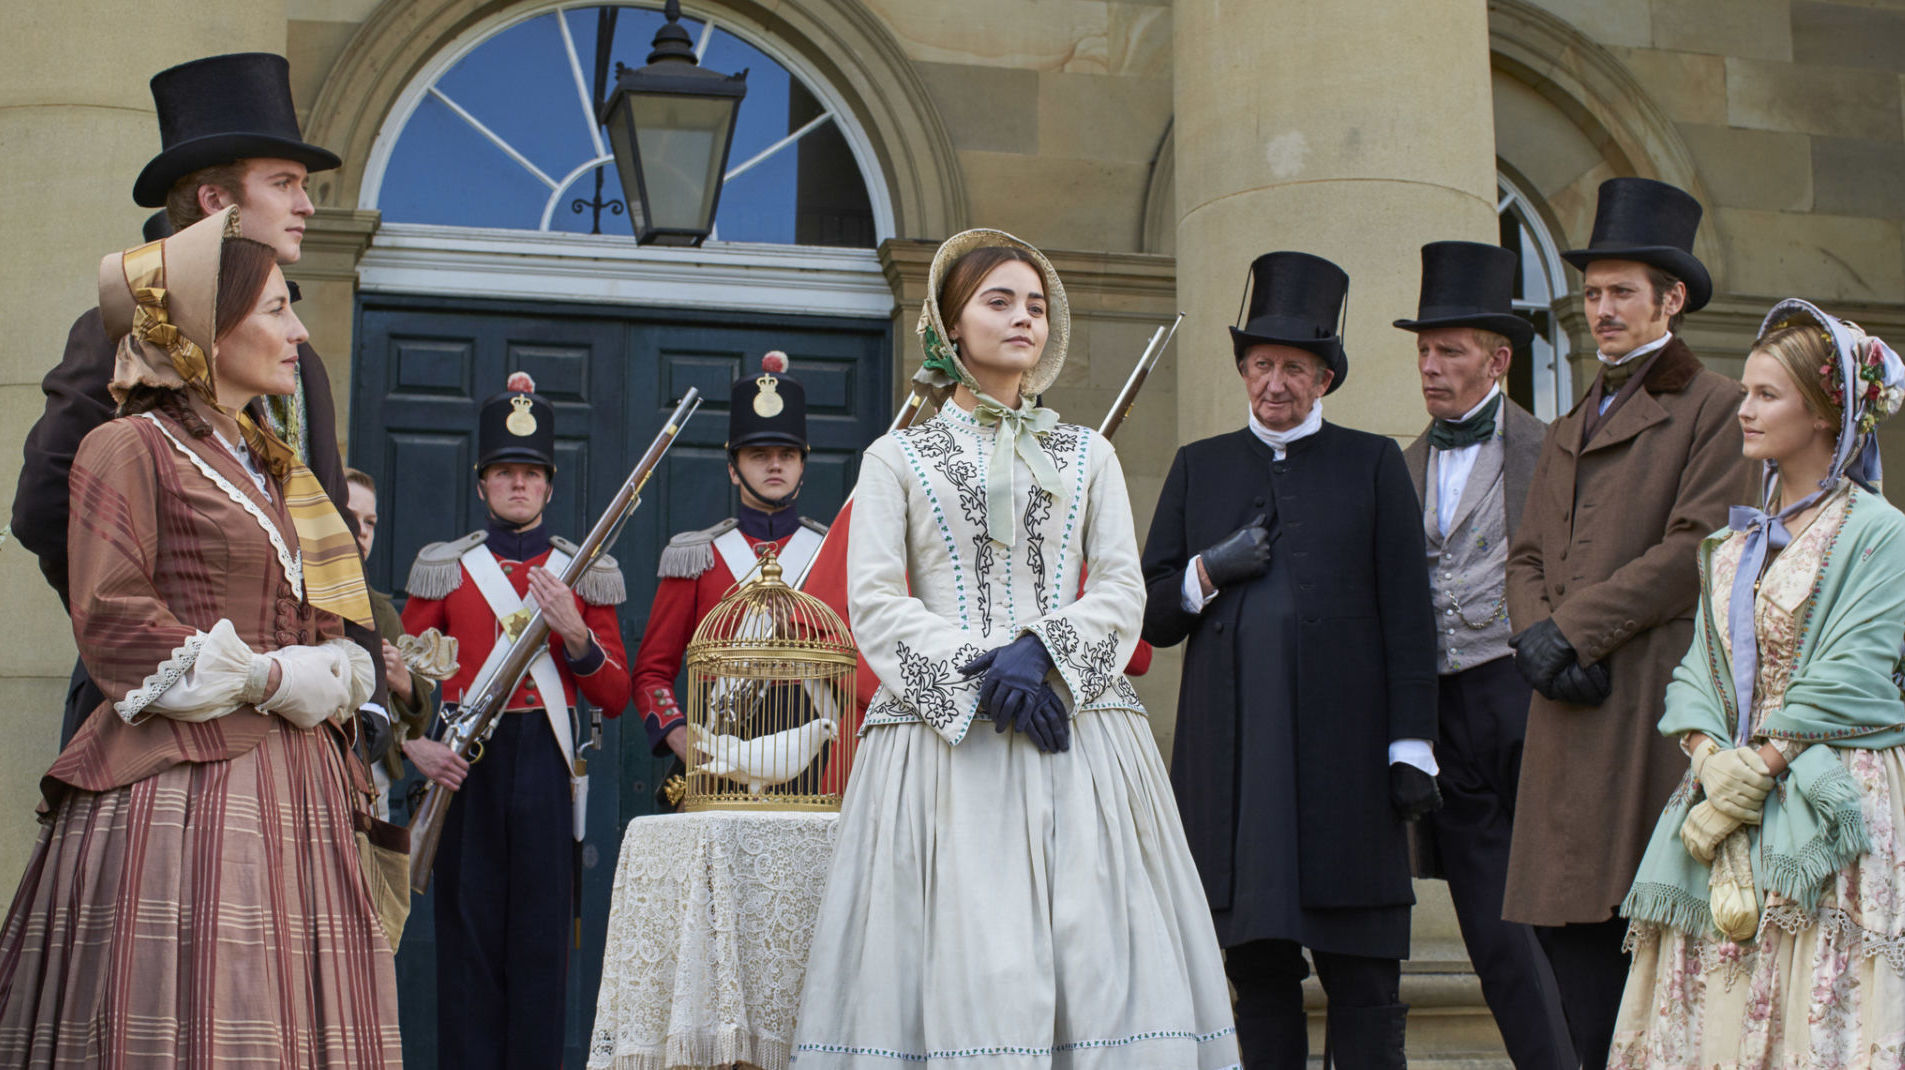 Lord Alfred, far left, in Episode 5. This was Lord Alfred's only photo opportunity in Victoria Season 3 on Masterpiece.